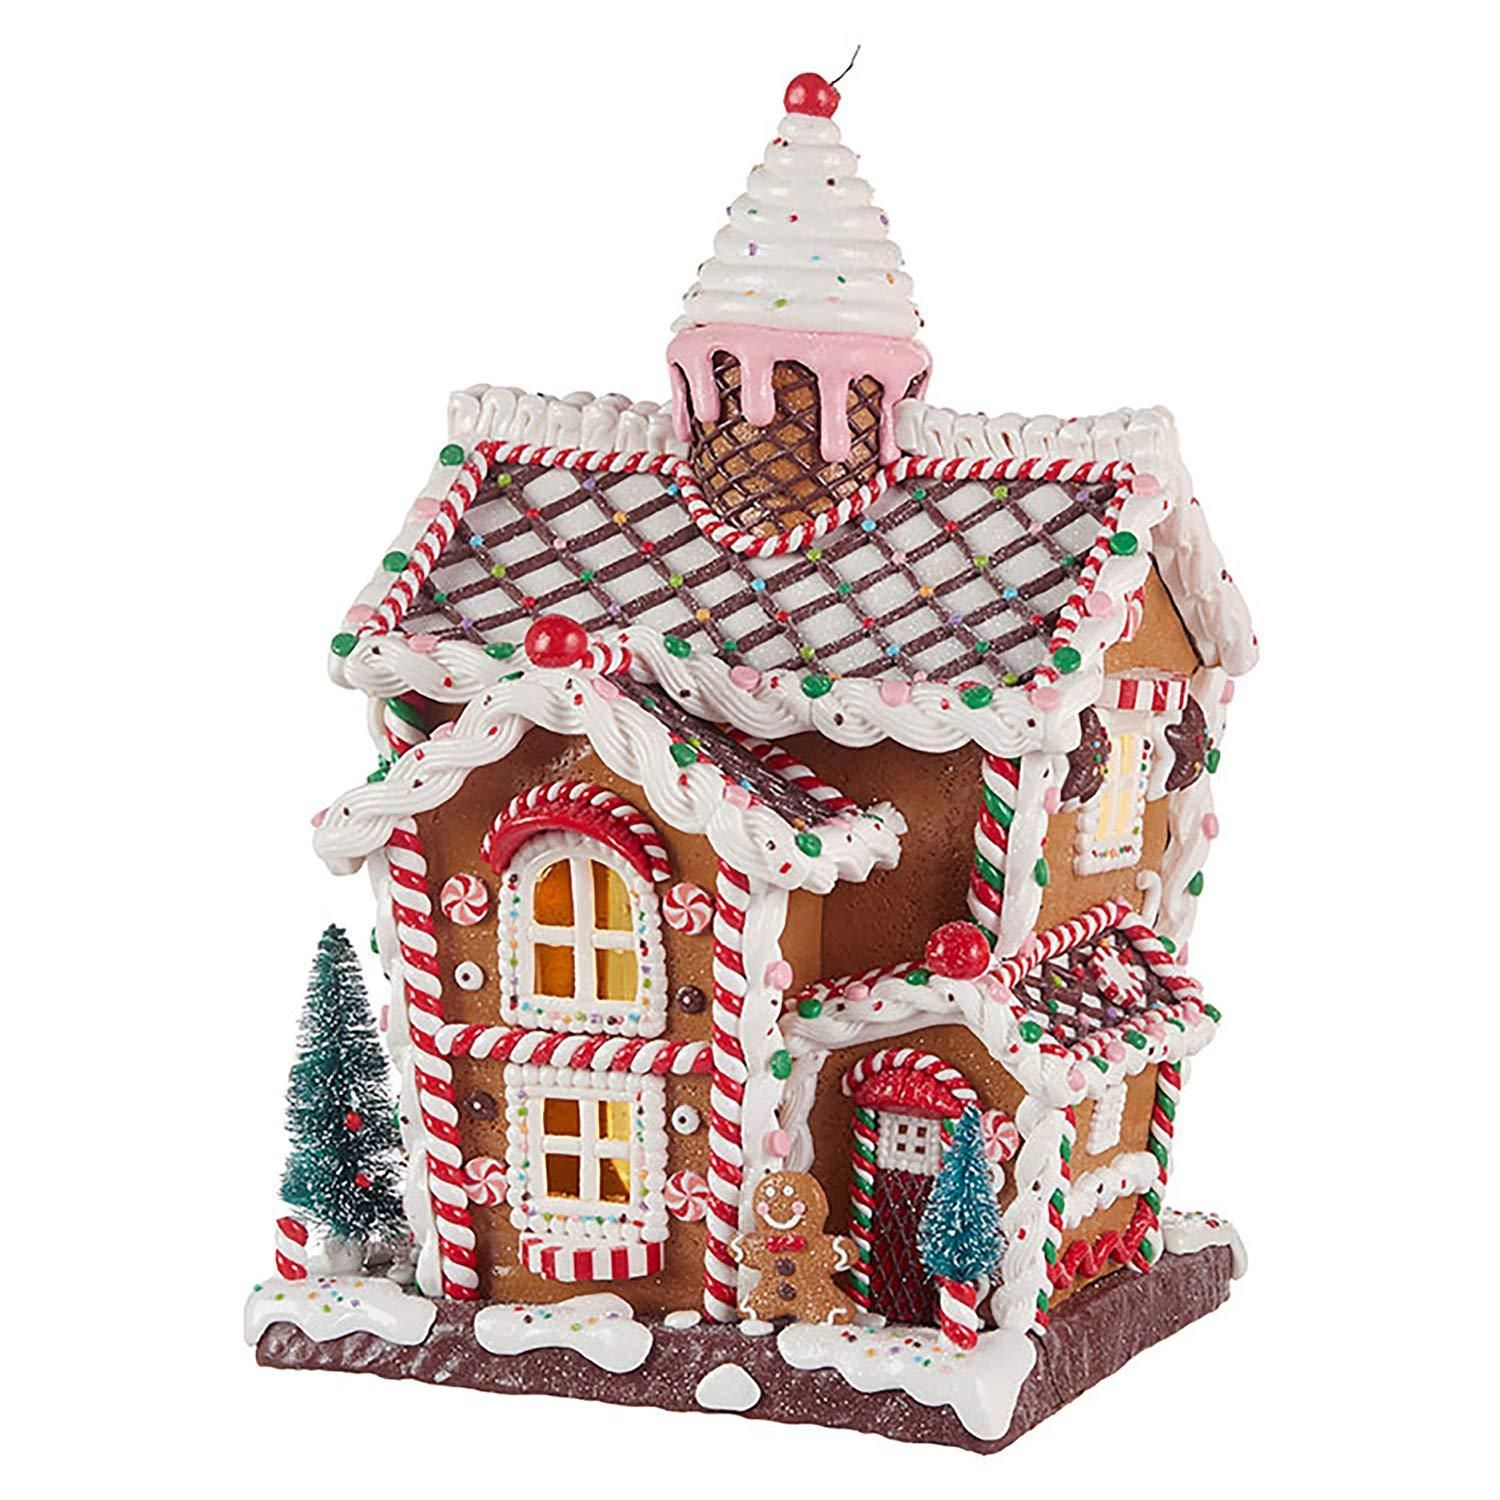 14Inch Whimsical Lighted Ice Cream Gingerbread House